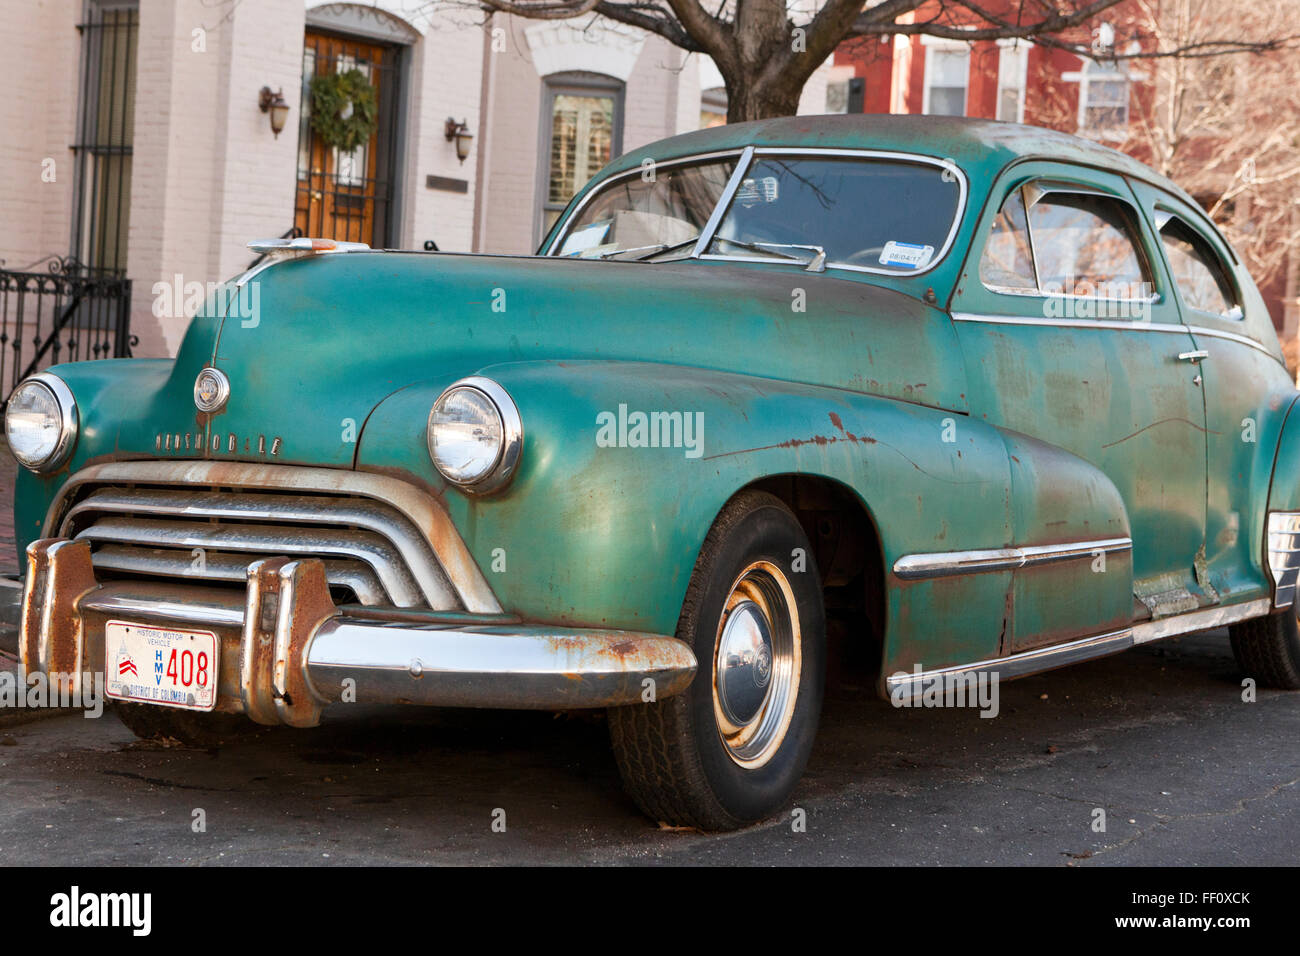 Vintage 1948 Oldsmobile Coupe 66 2-door car (rusty old car) - USA - Stock Image